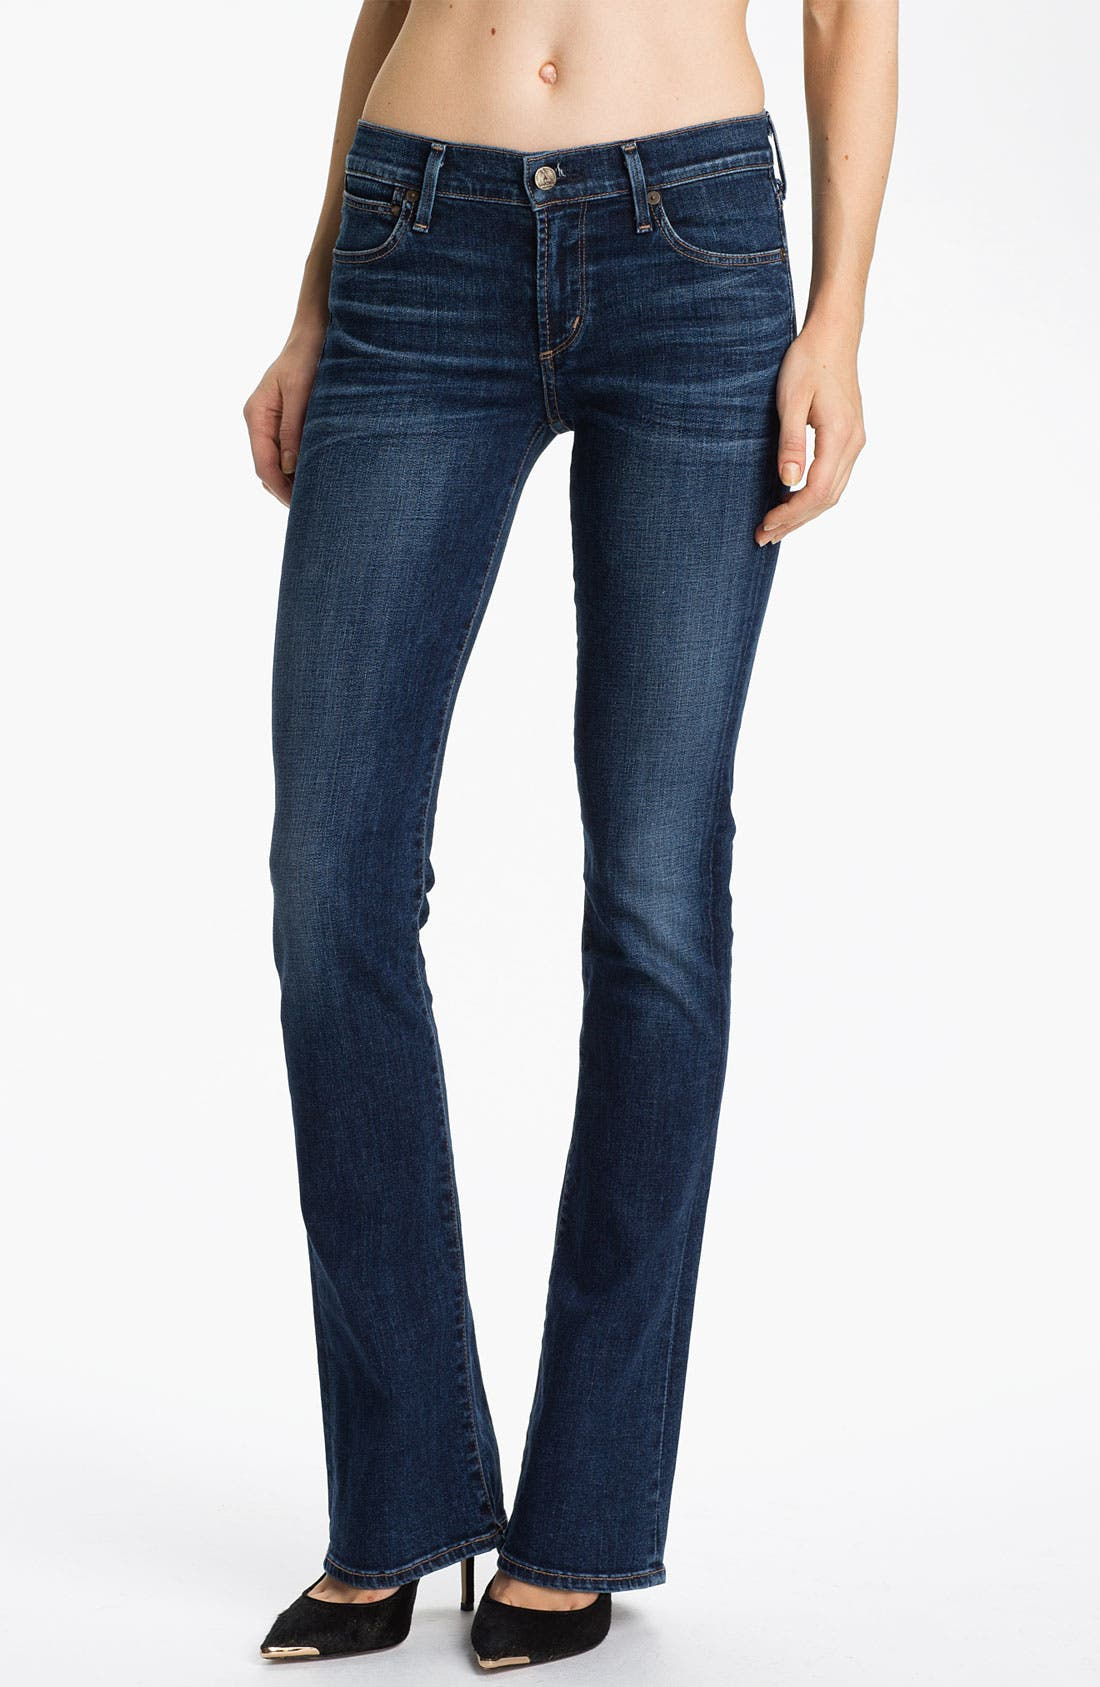 Alternate Image 1 Selected - Citizens of Humanity 'Emmanuelle' Slim Bootcut Jeans (Crispy)